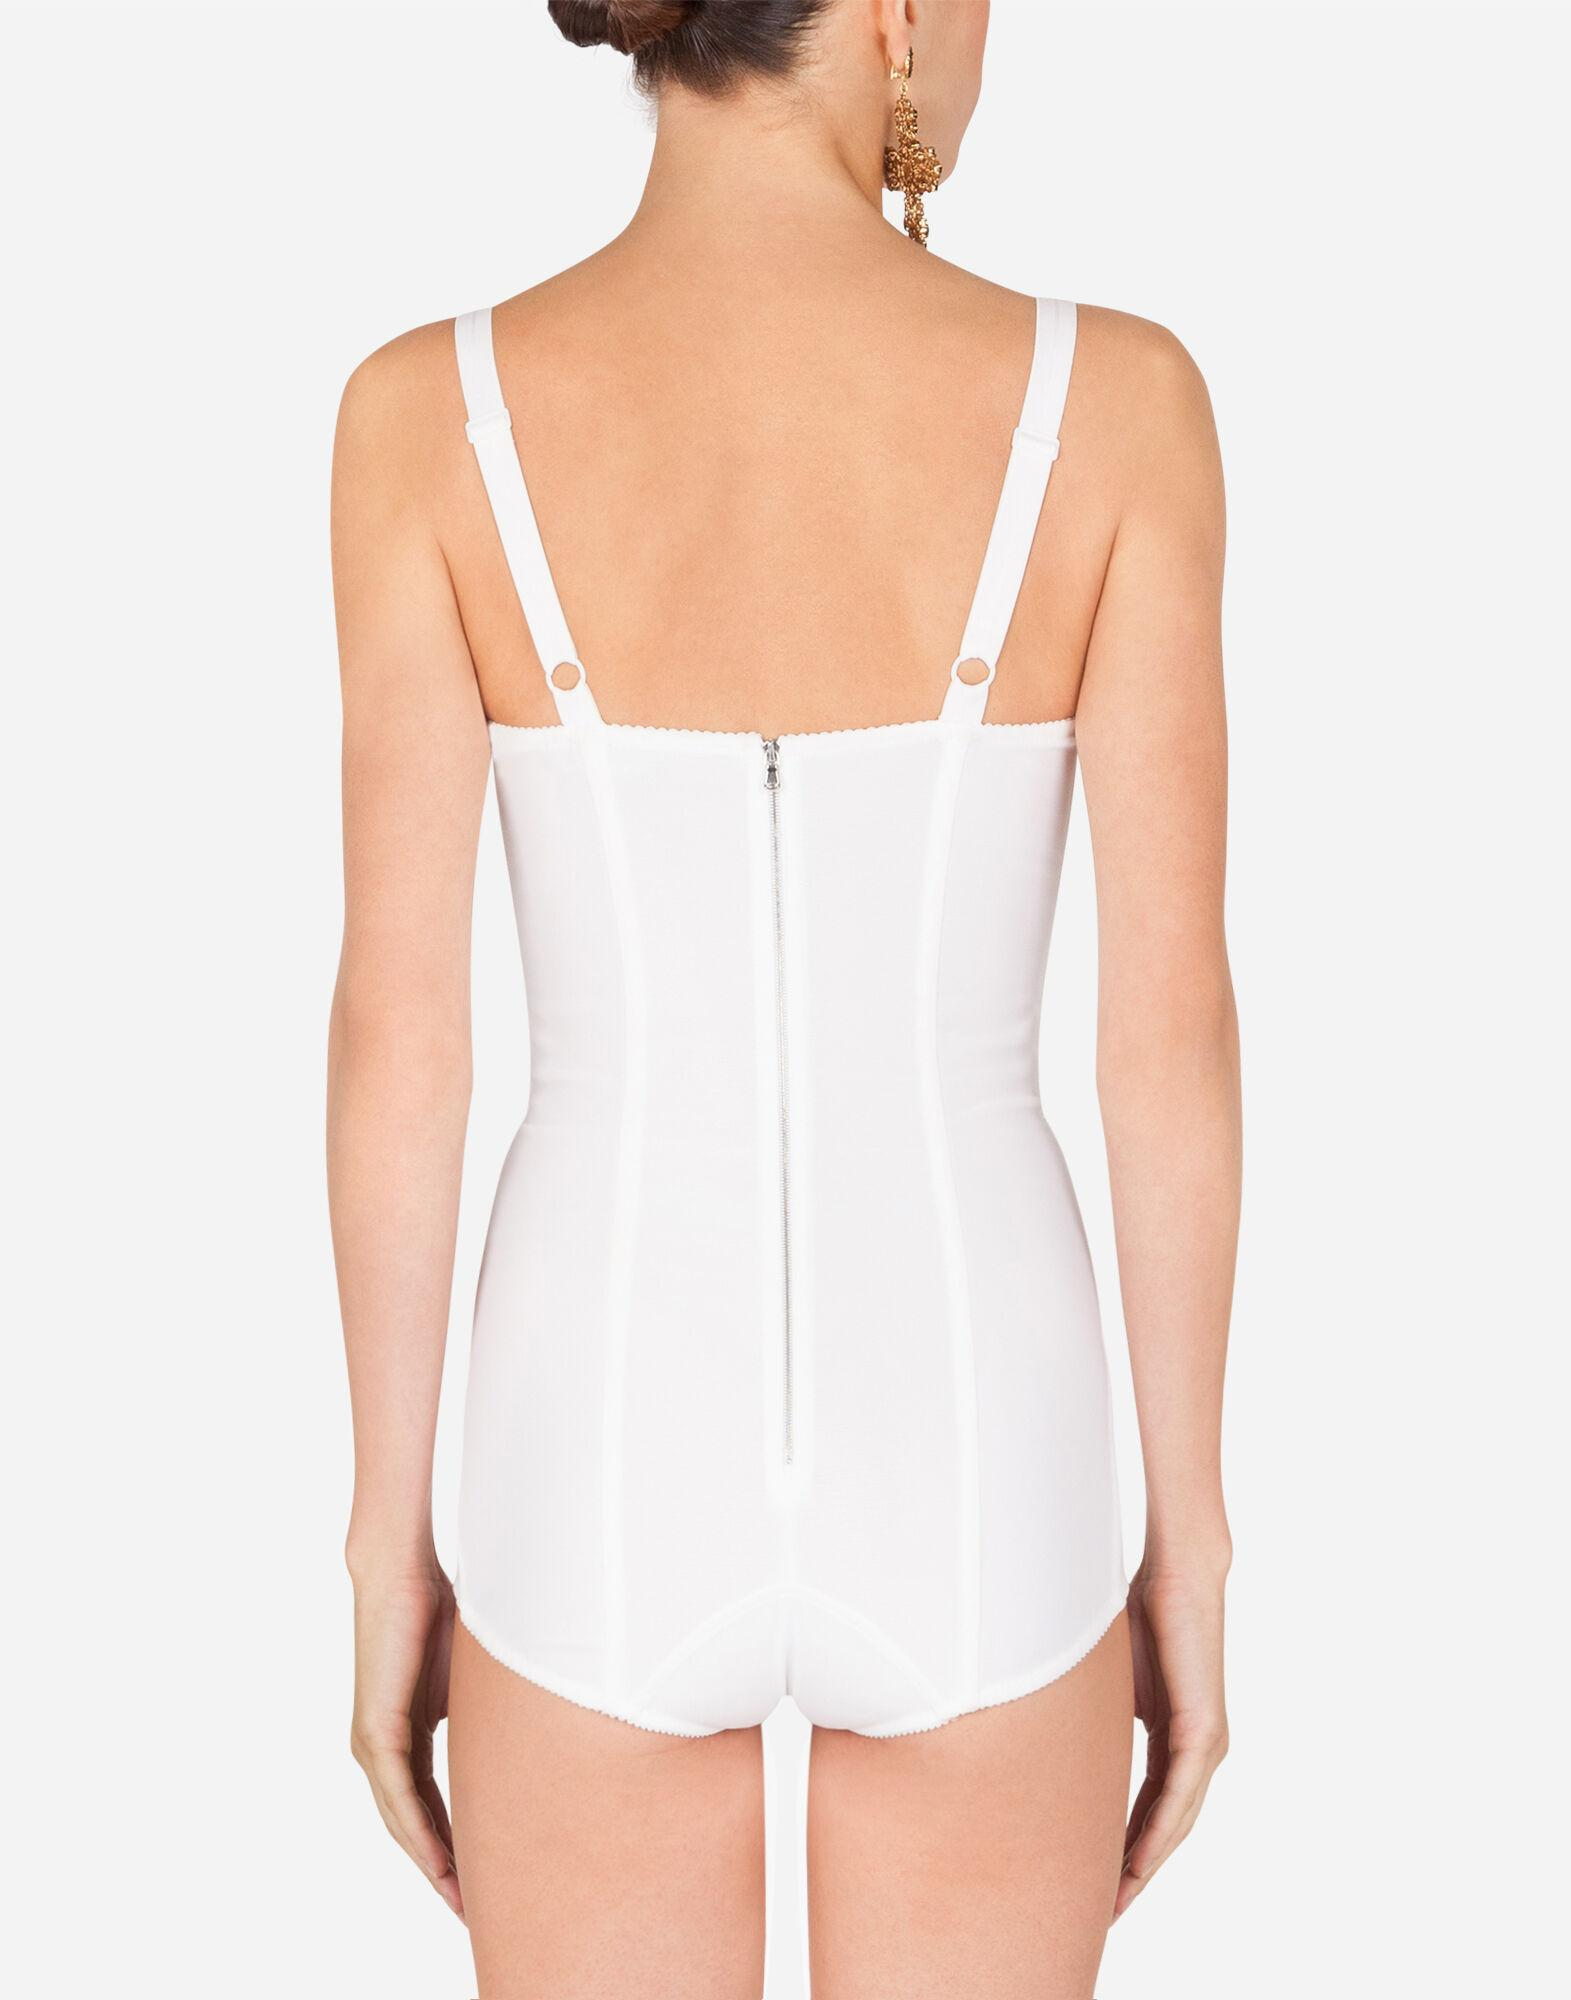 Shaper corset bodysuit in lace and jacquard 1